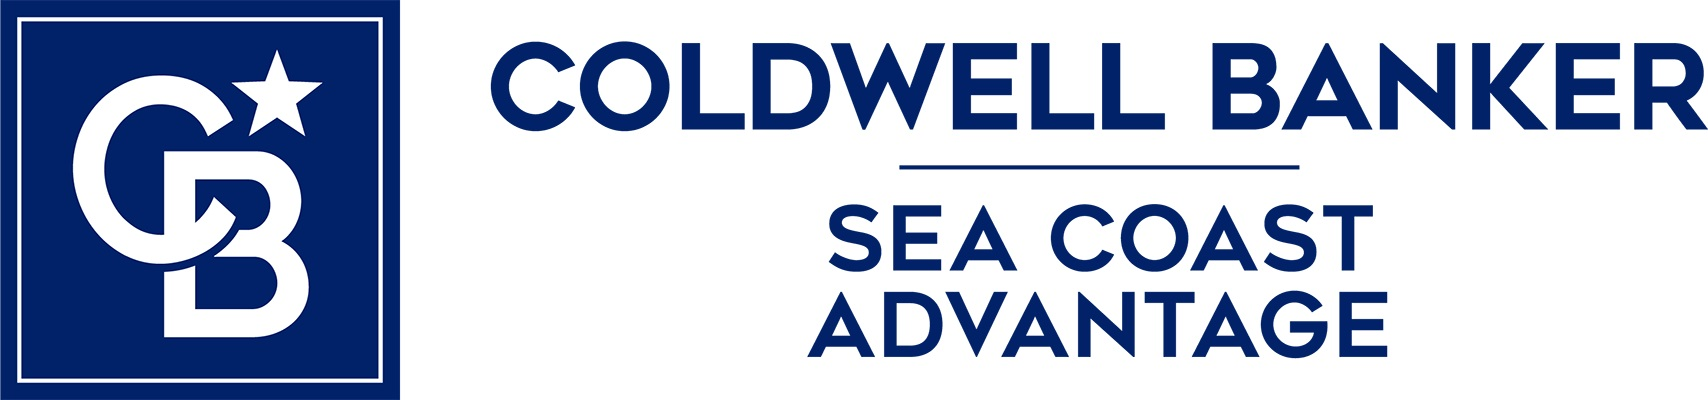 Pennie Morris - Coldwell Banker Sea Coast Advantage Realty Logo